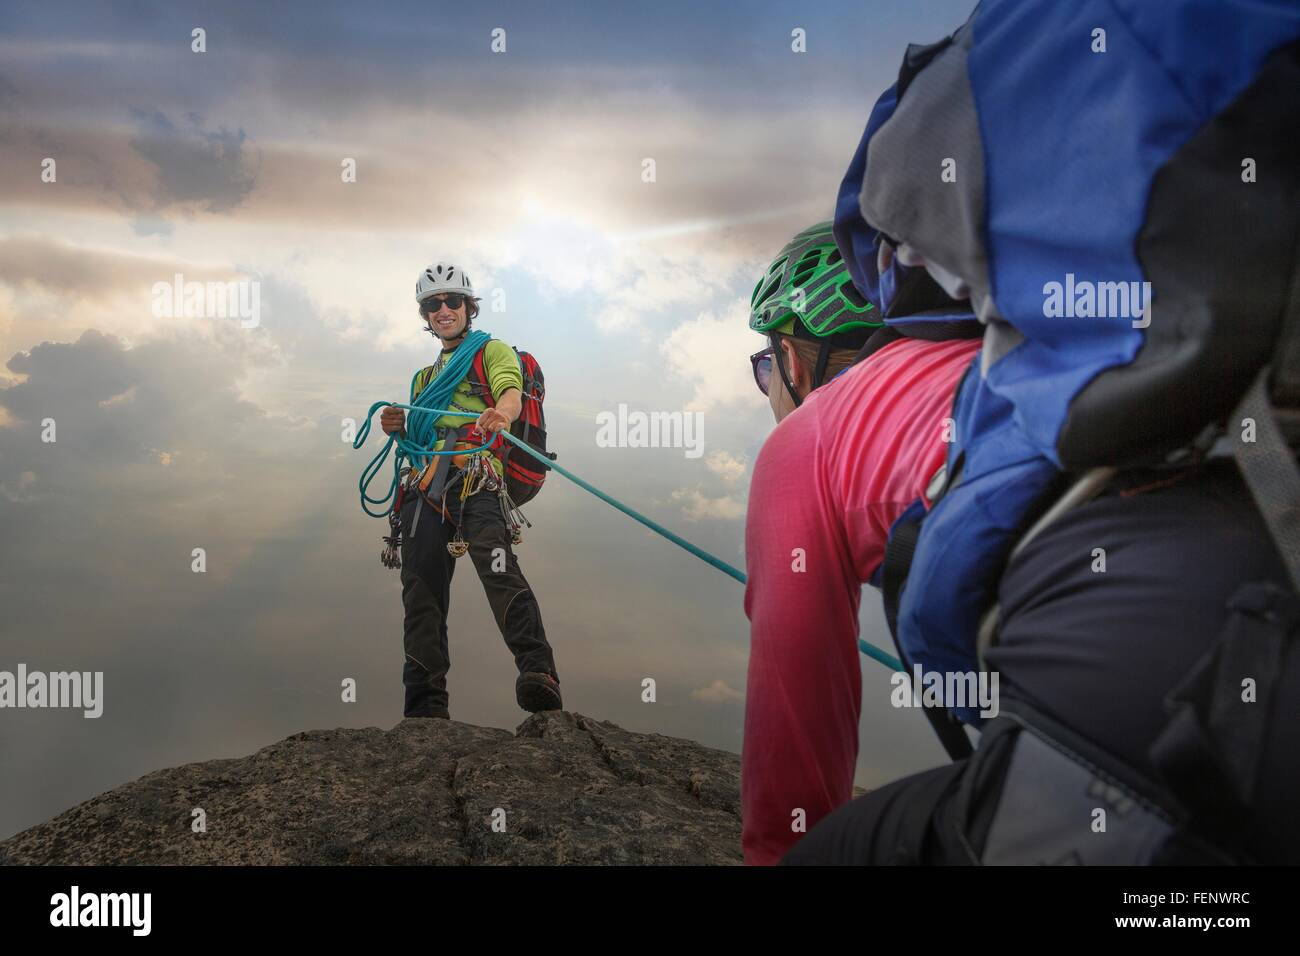 Climber on mountain top holding rope for partner, Mont Blanc, France Stock Photo